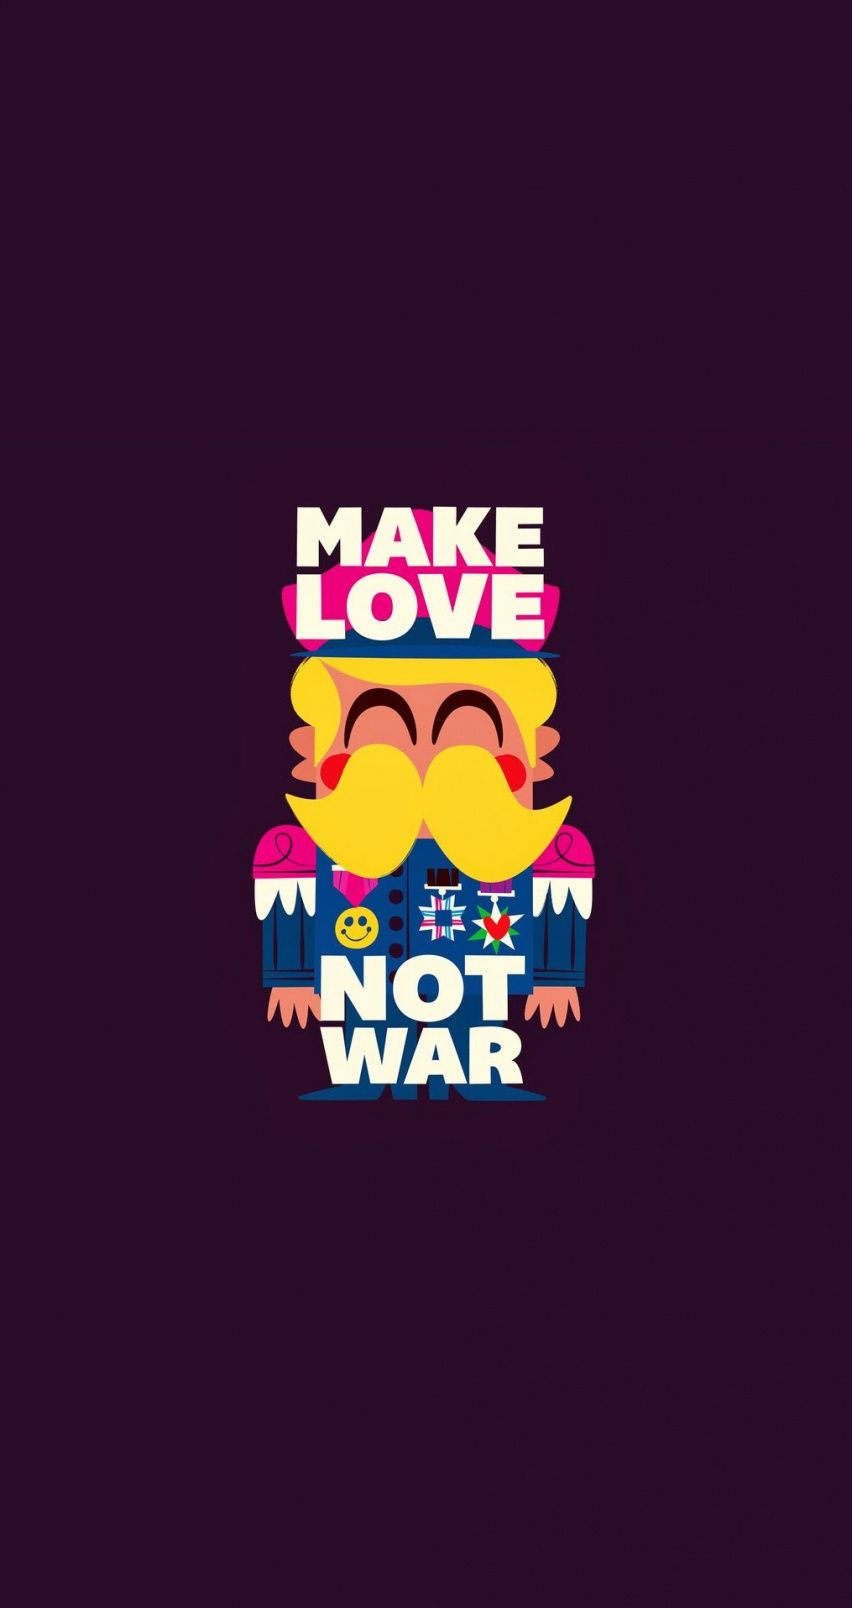 Love Wallpaper Iphone 4s : Make love not war. Tap image for more cartoon wallpapers! - @mobile9 Funny cute wallpaper for ...